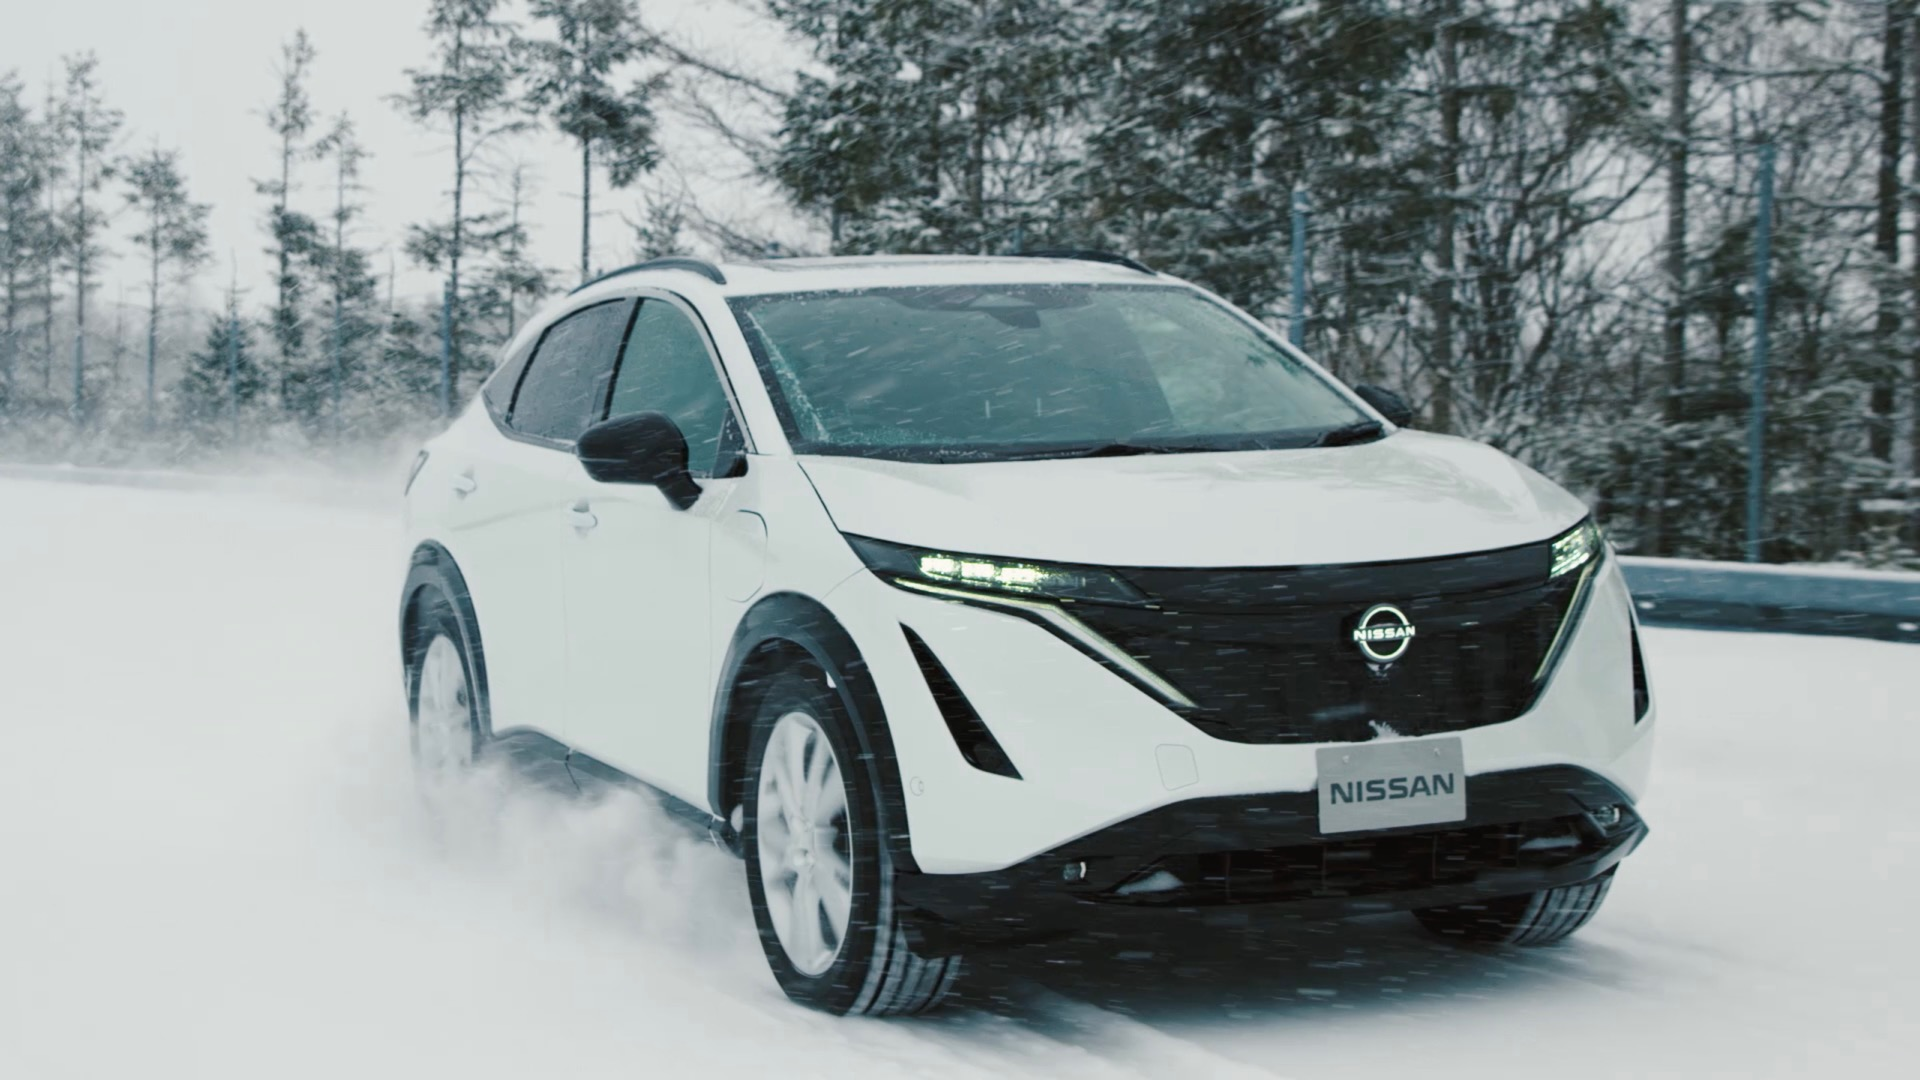 Nissan Ariya electric crossover is being tuned for each global market